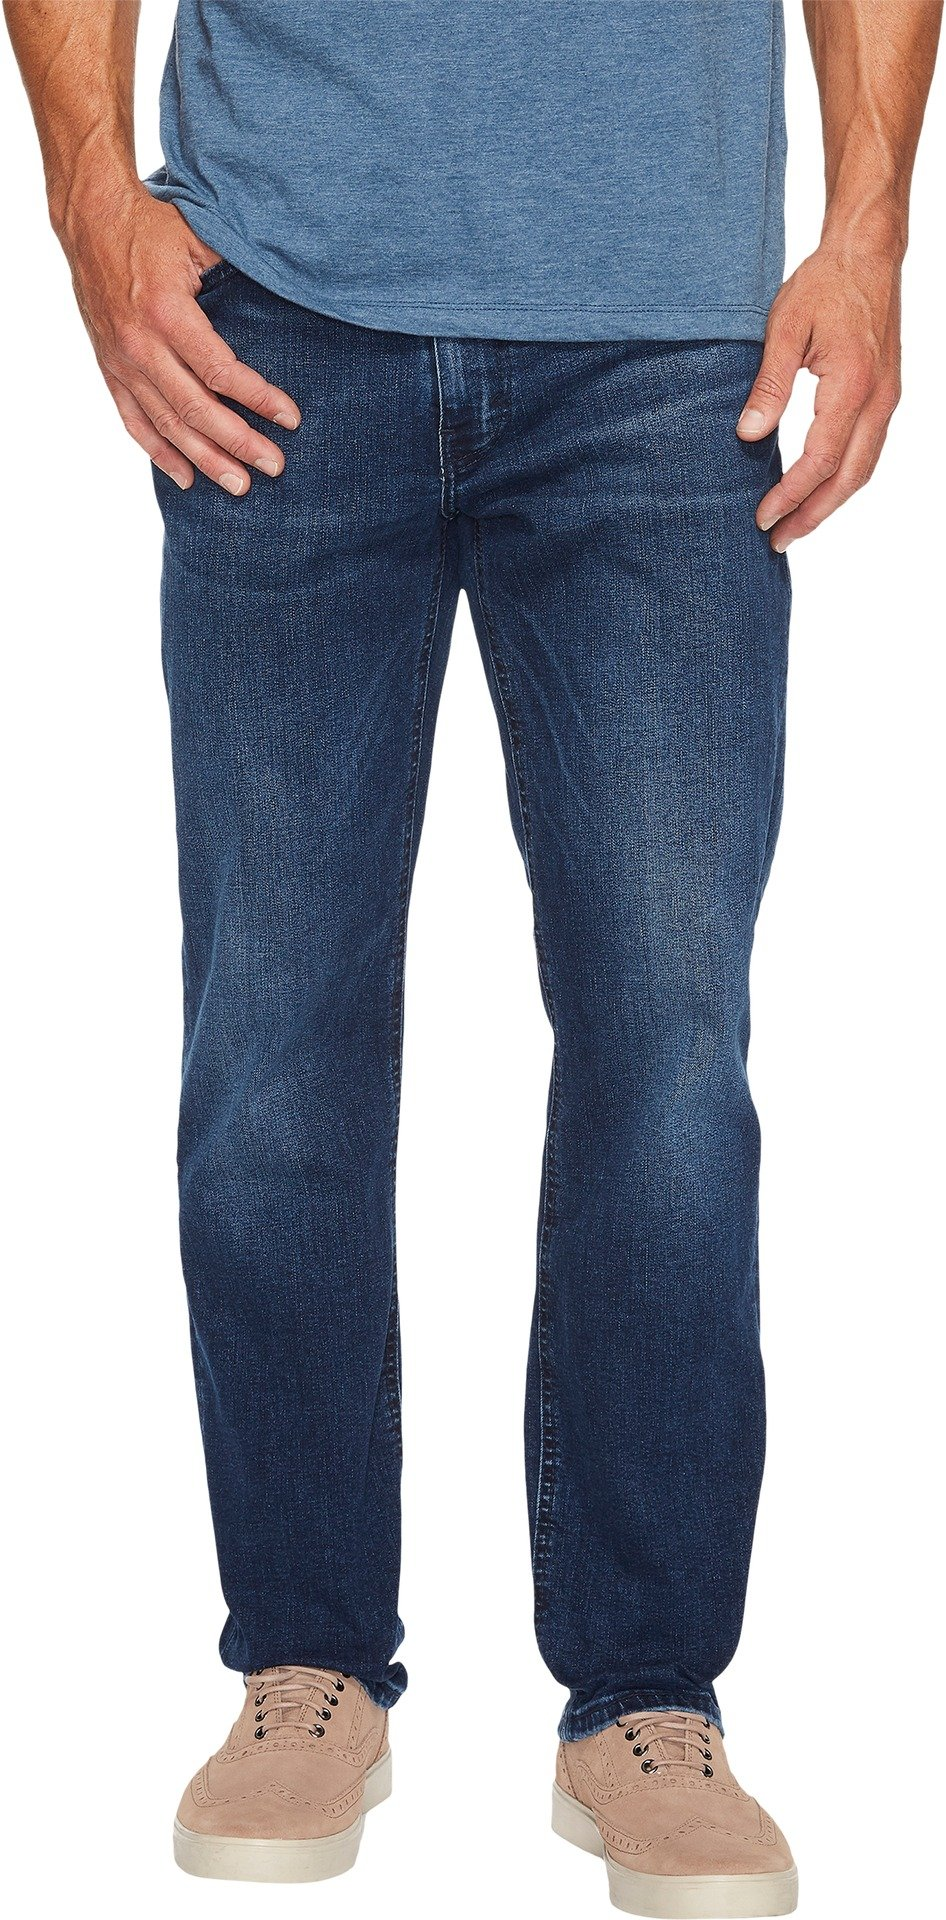 Levi's Men's 541 Athletic Straight-Fit Jean, Husker - Stretch, 36x32 by Levi's